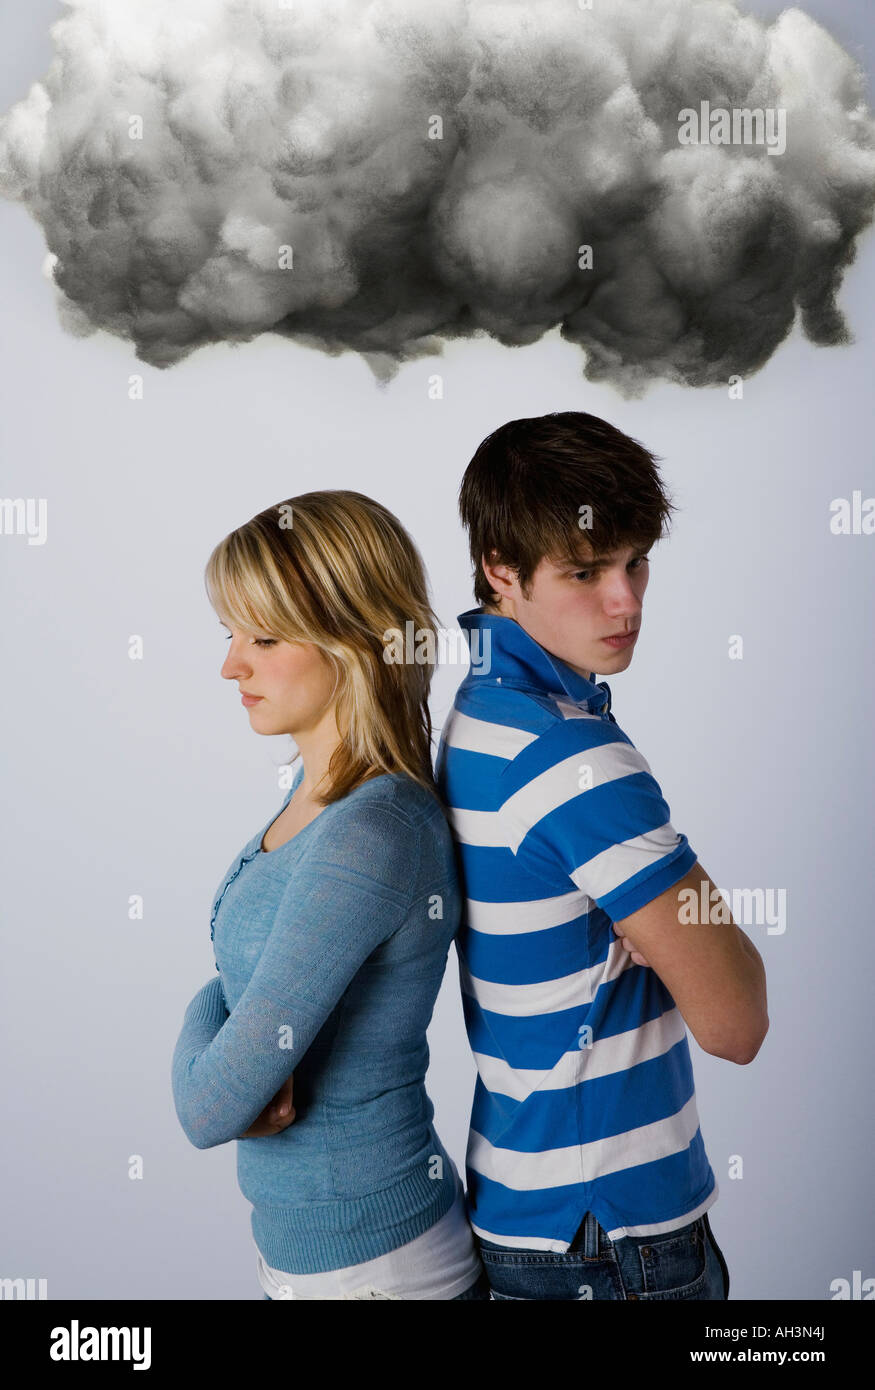 Male and female under dark cloud - Stock Image